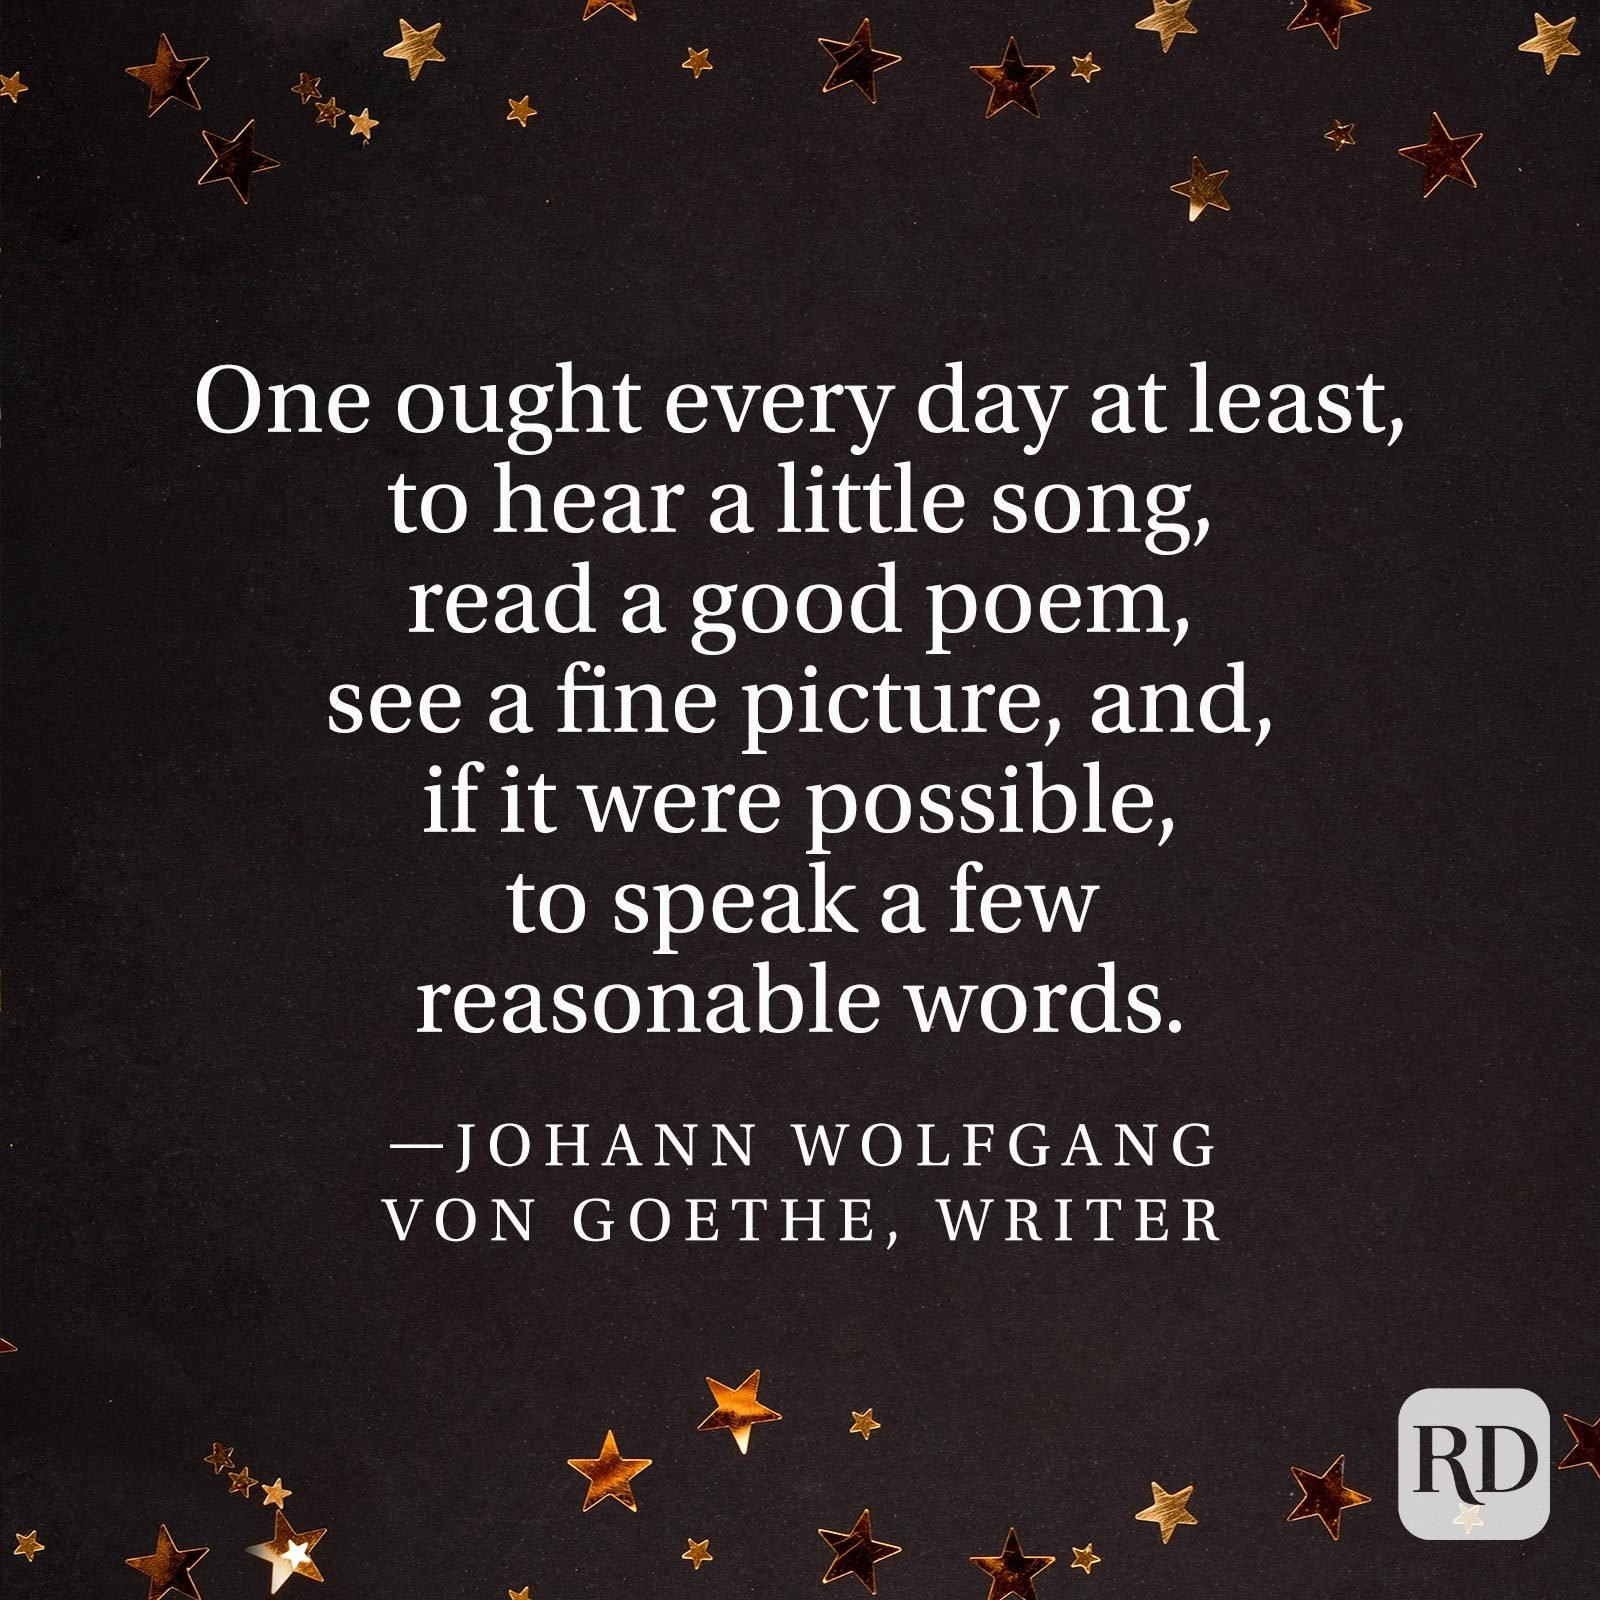 """One ought every day at least, to hear a little song, read a good poem, see a fine picture, and, if it were possible, to speak a few reasonable words."" —Johann Wolfgang von Goethe, writer"